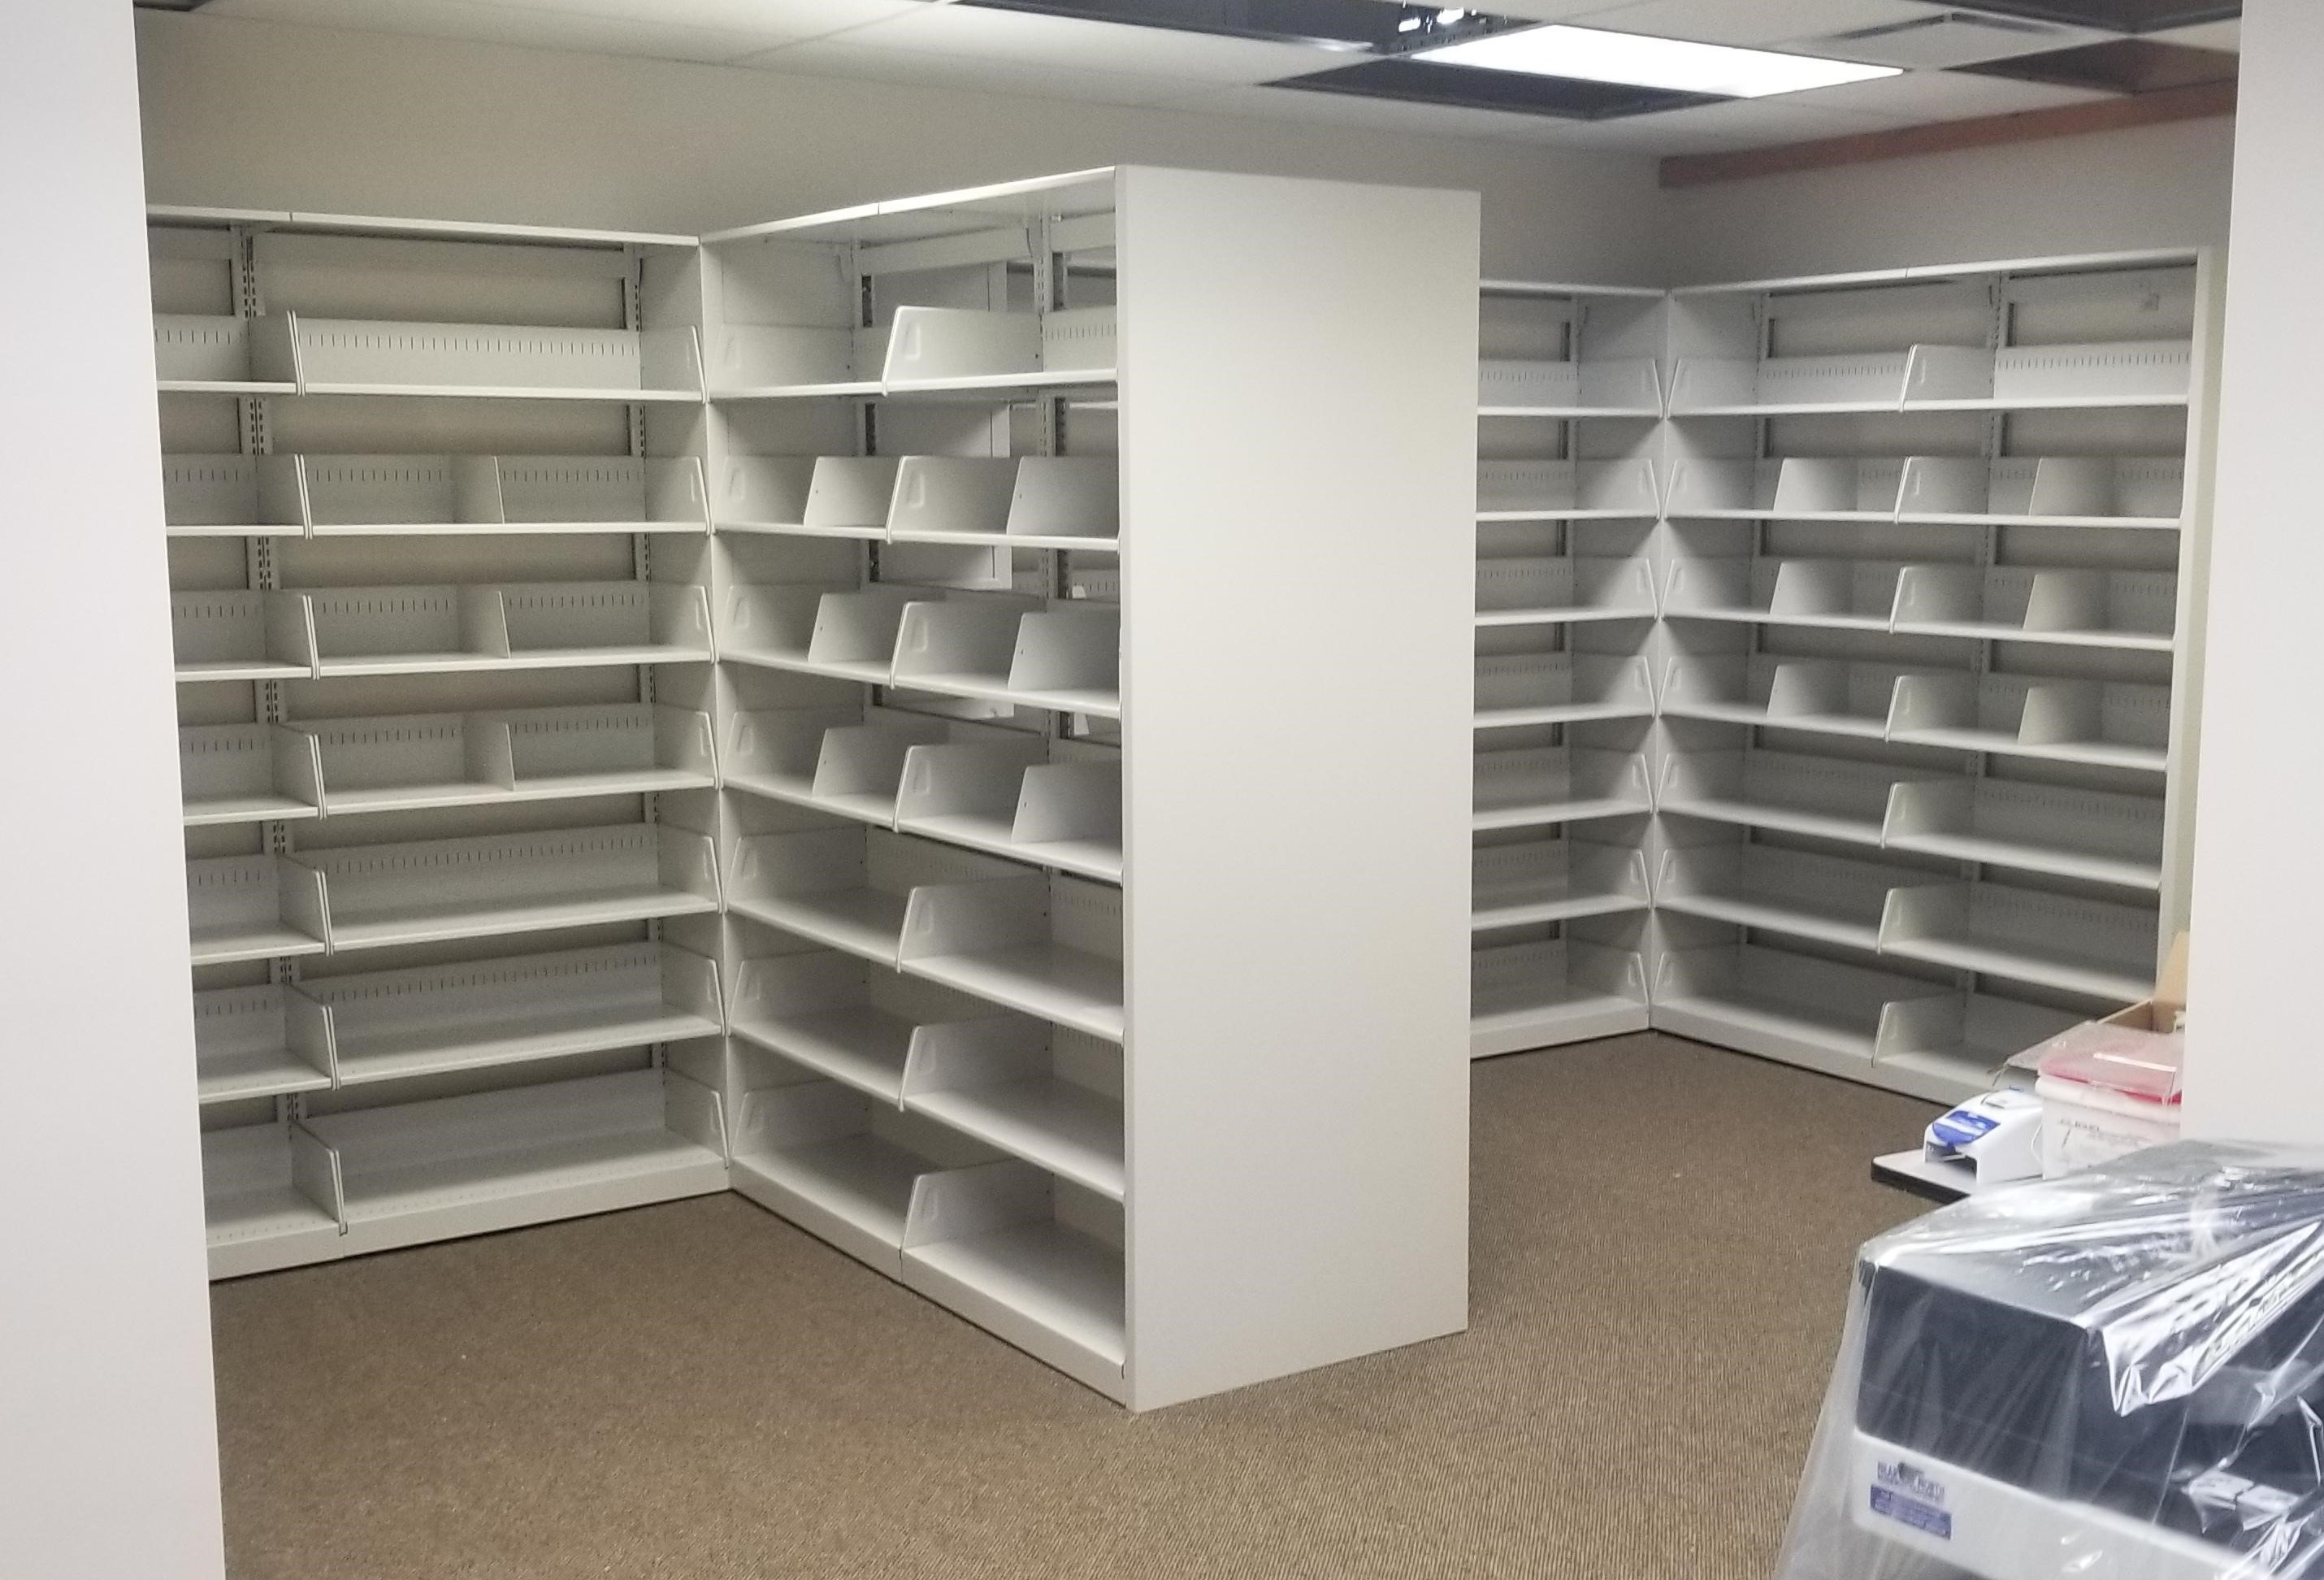 Canadian Mental Health Association Shelving